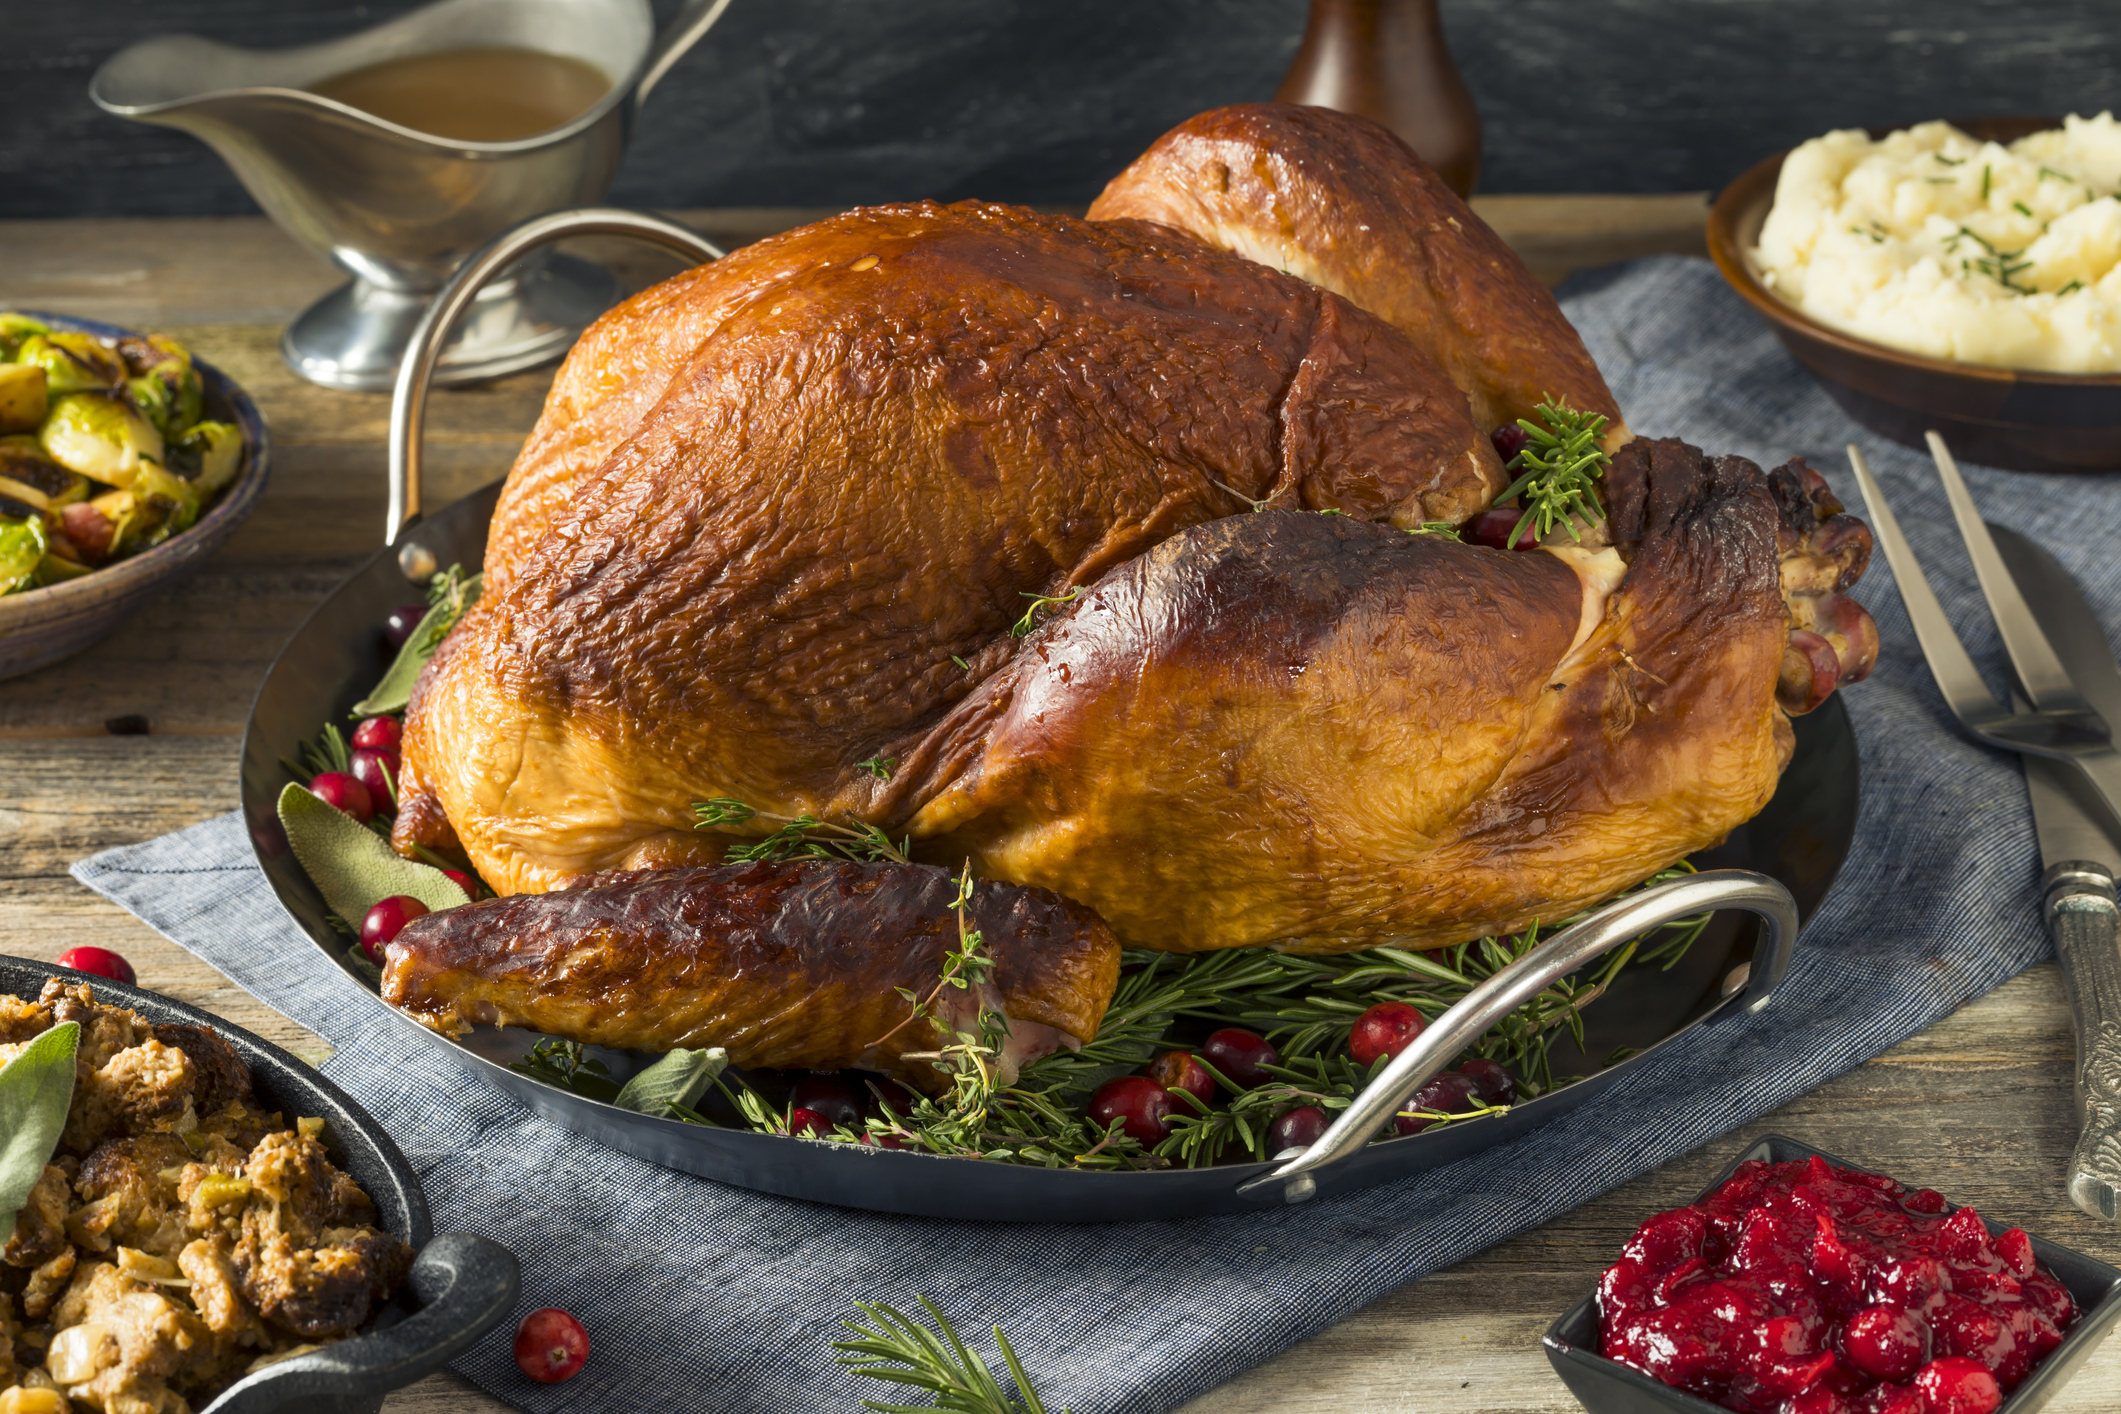 Your Complete Thanksgiving Menu, Cooking Schedule, and Shopping List